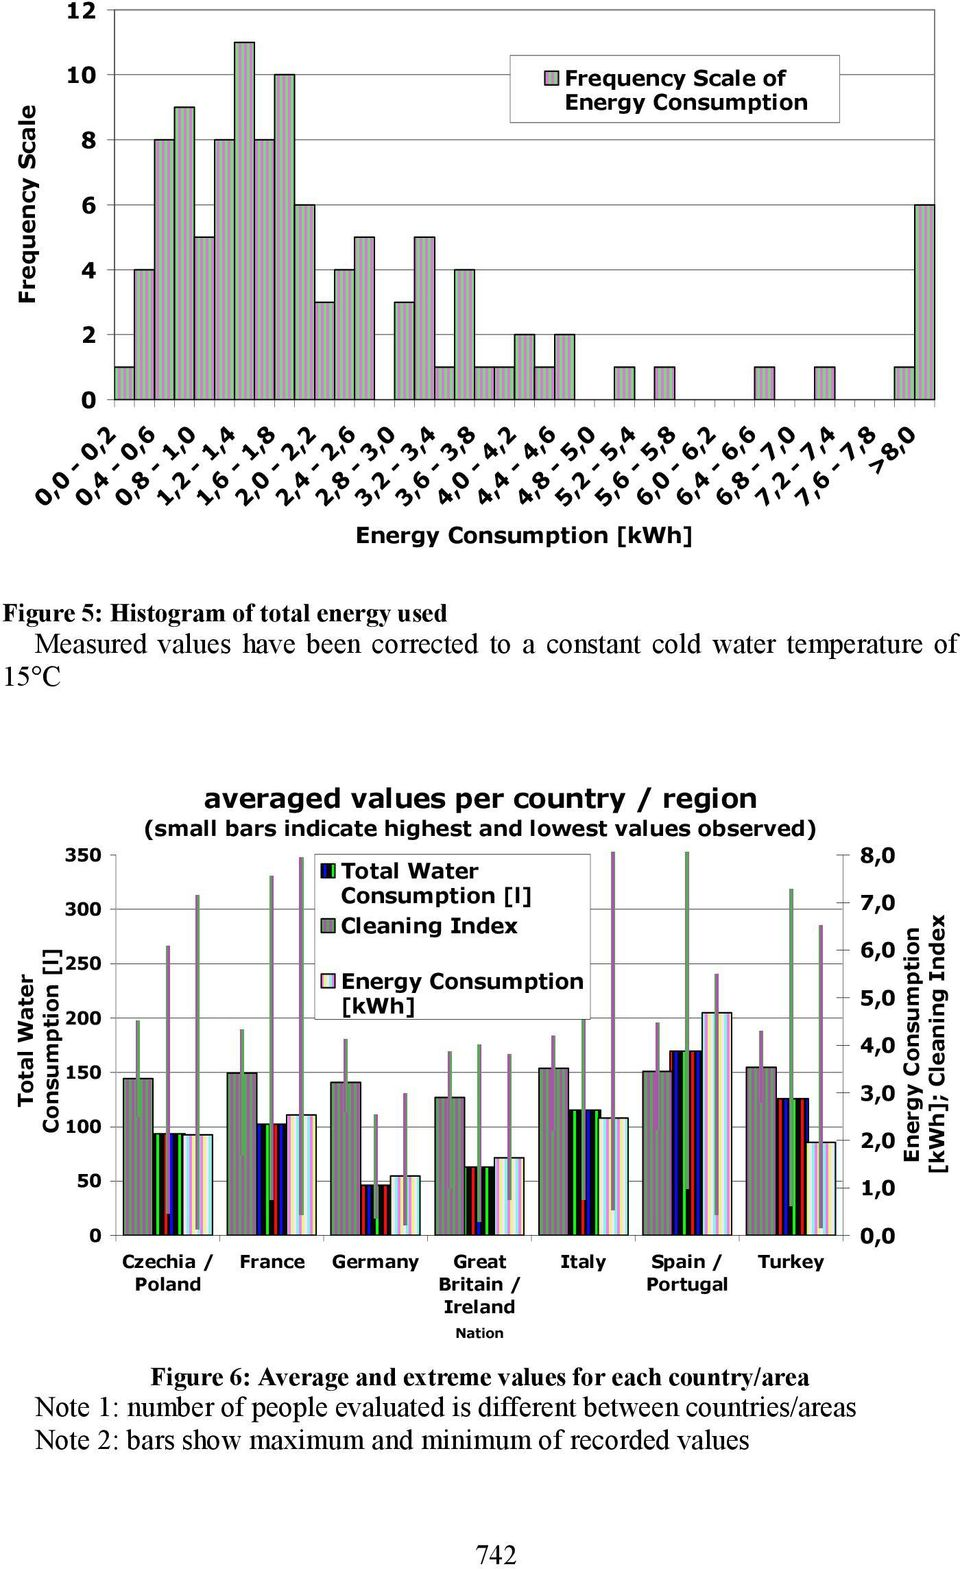 [l] 35 3 25 2 15 1 5 averaged values per country / region (small bars indicate highest and lowest values observed) Total Water Consumption [l] Cleaning Index Energy Consumption [kwh] 8, 7, 6, 5, 4,